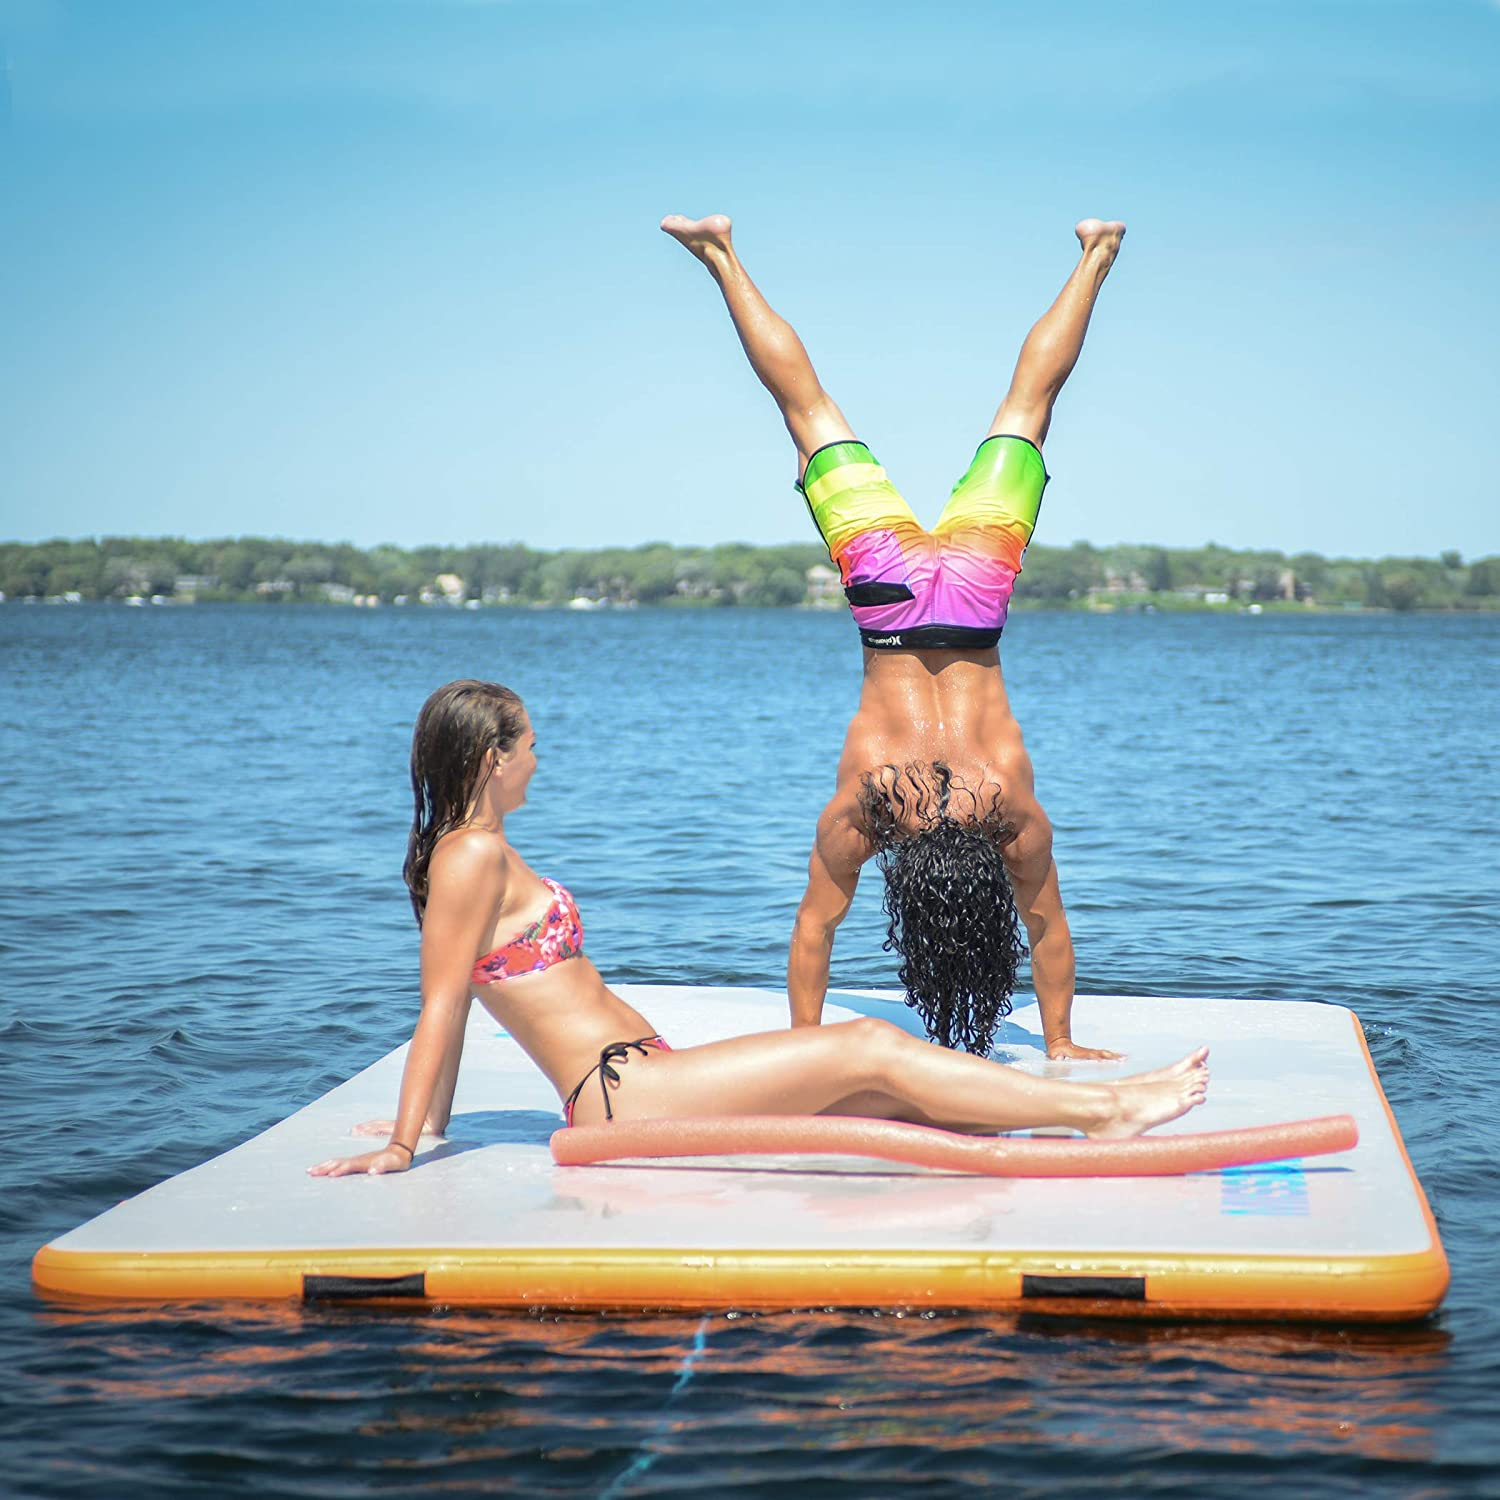 people having fun on an inflatable dock